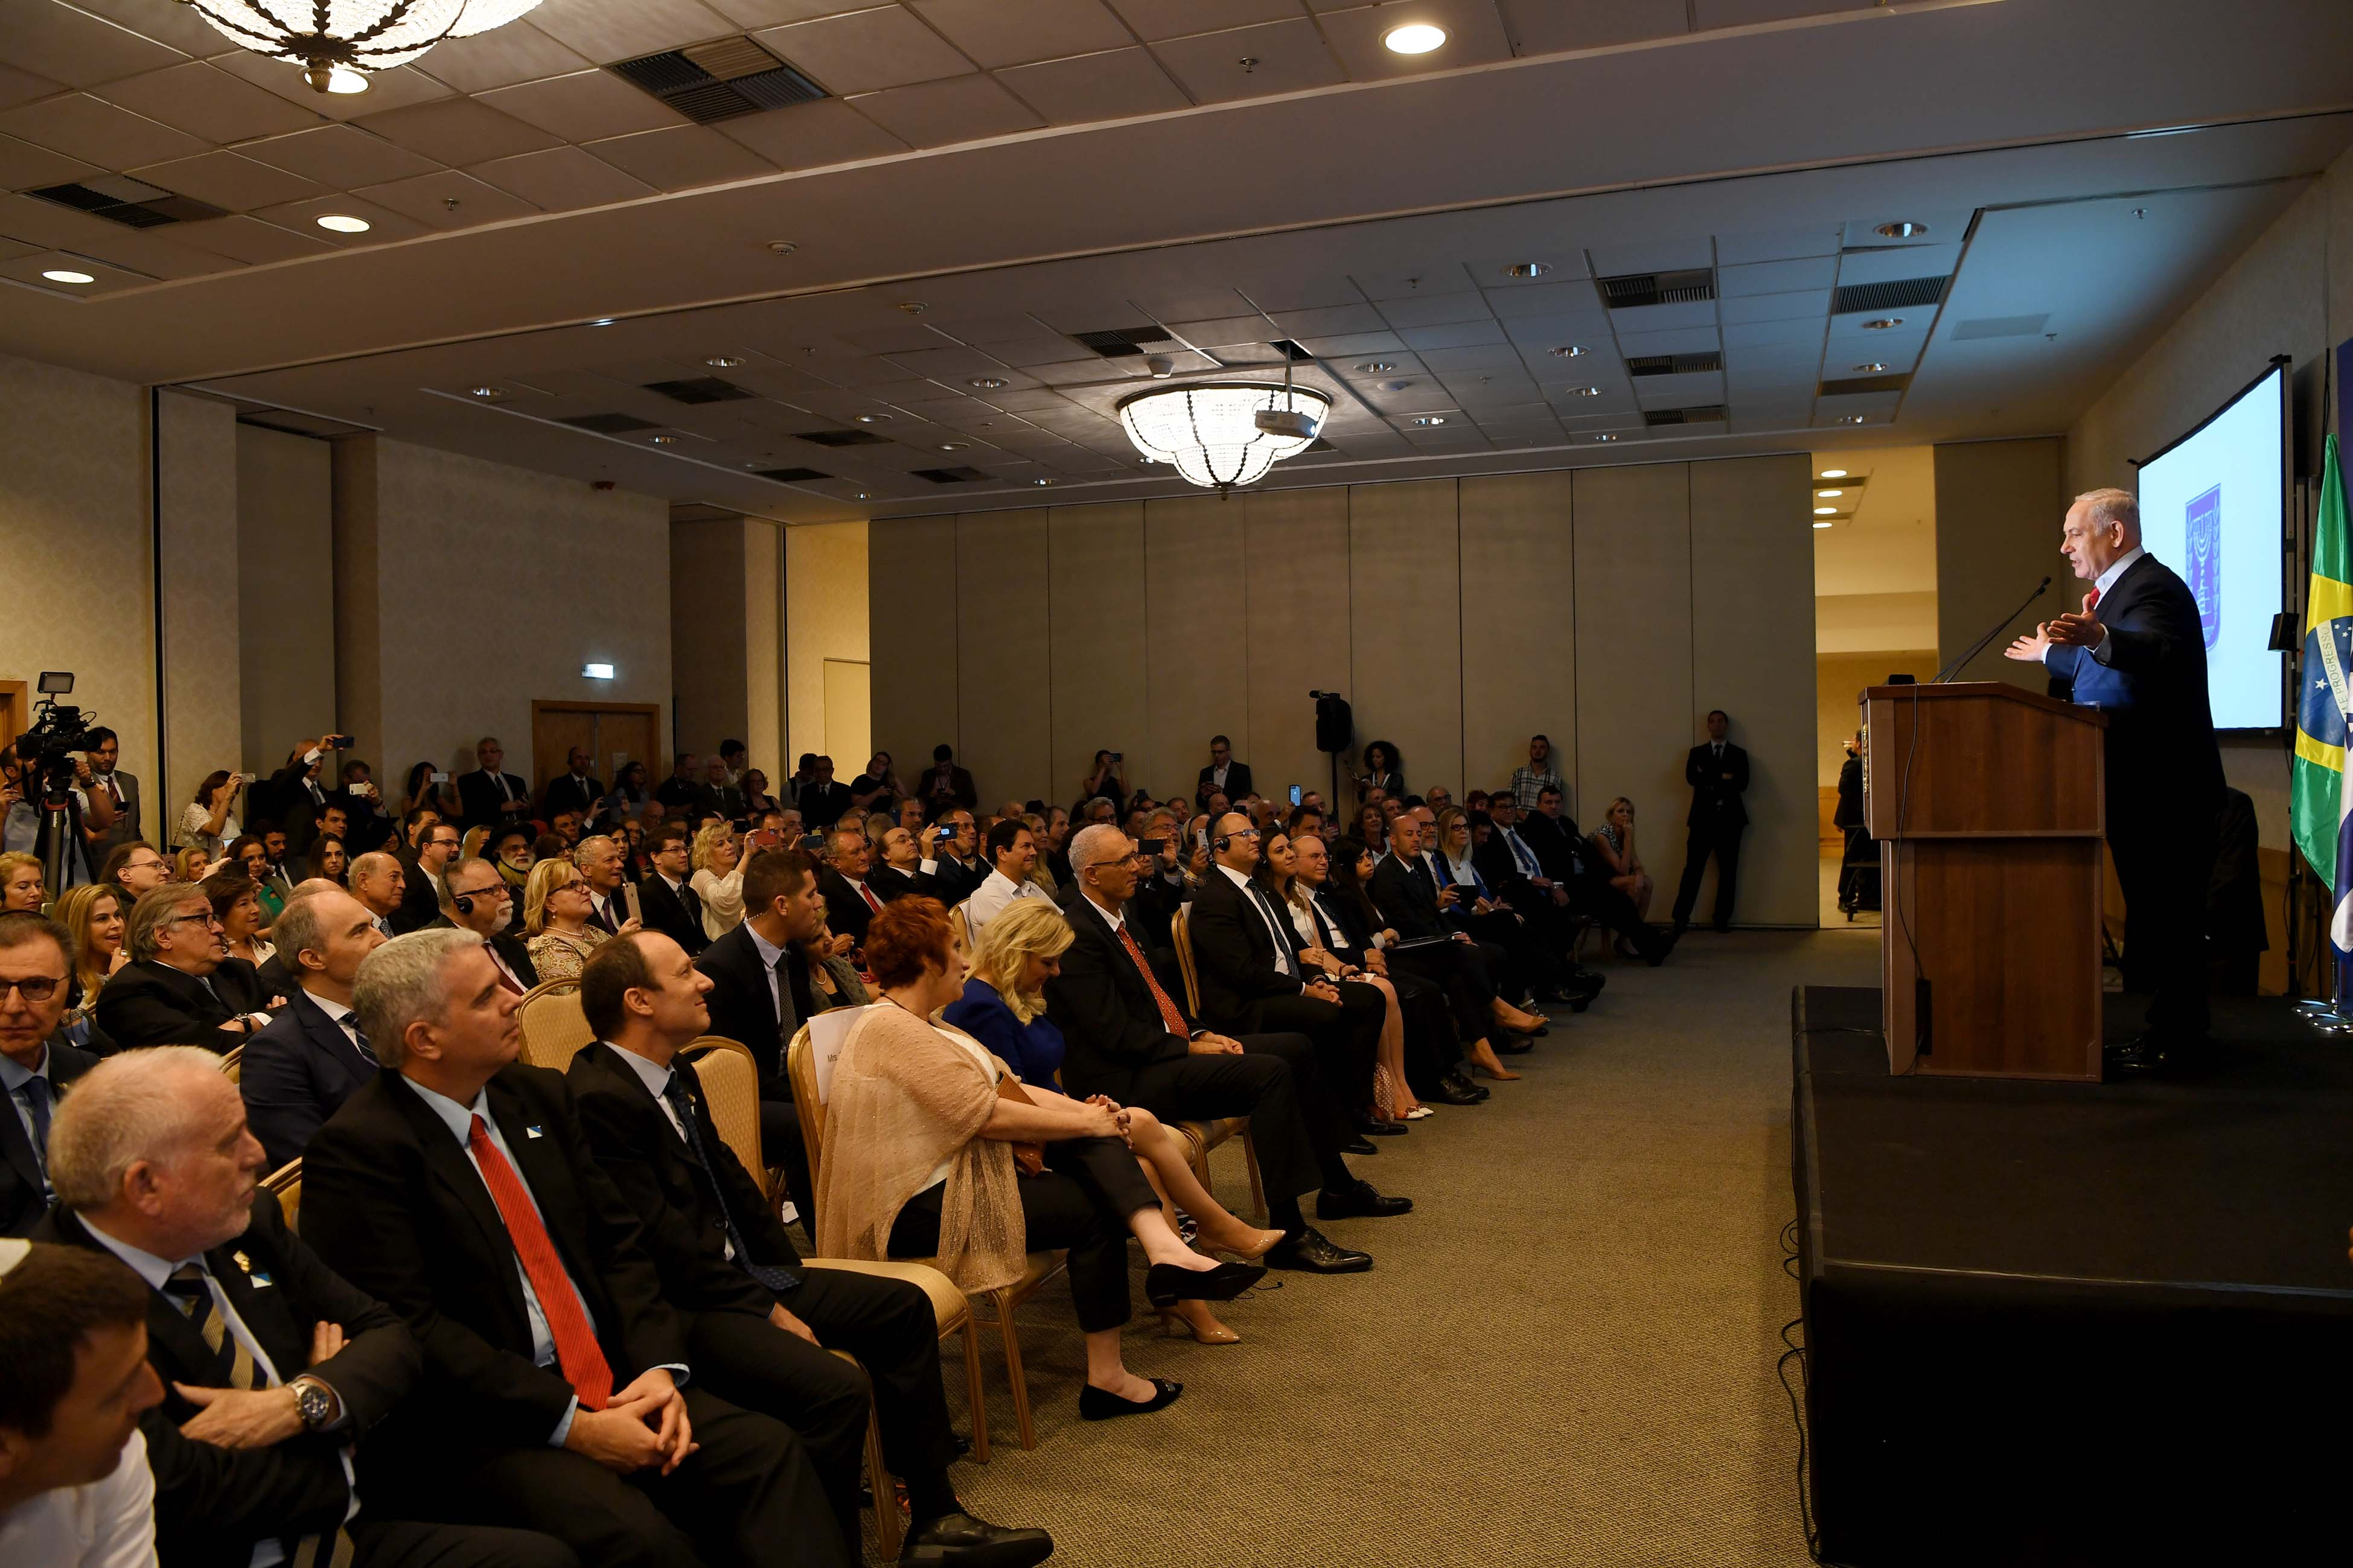 PM Netanyahu's Remarks at Event with Brazilian Jewish Community Leaders in Rio de Janeiro